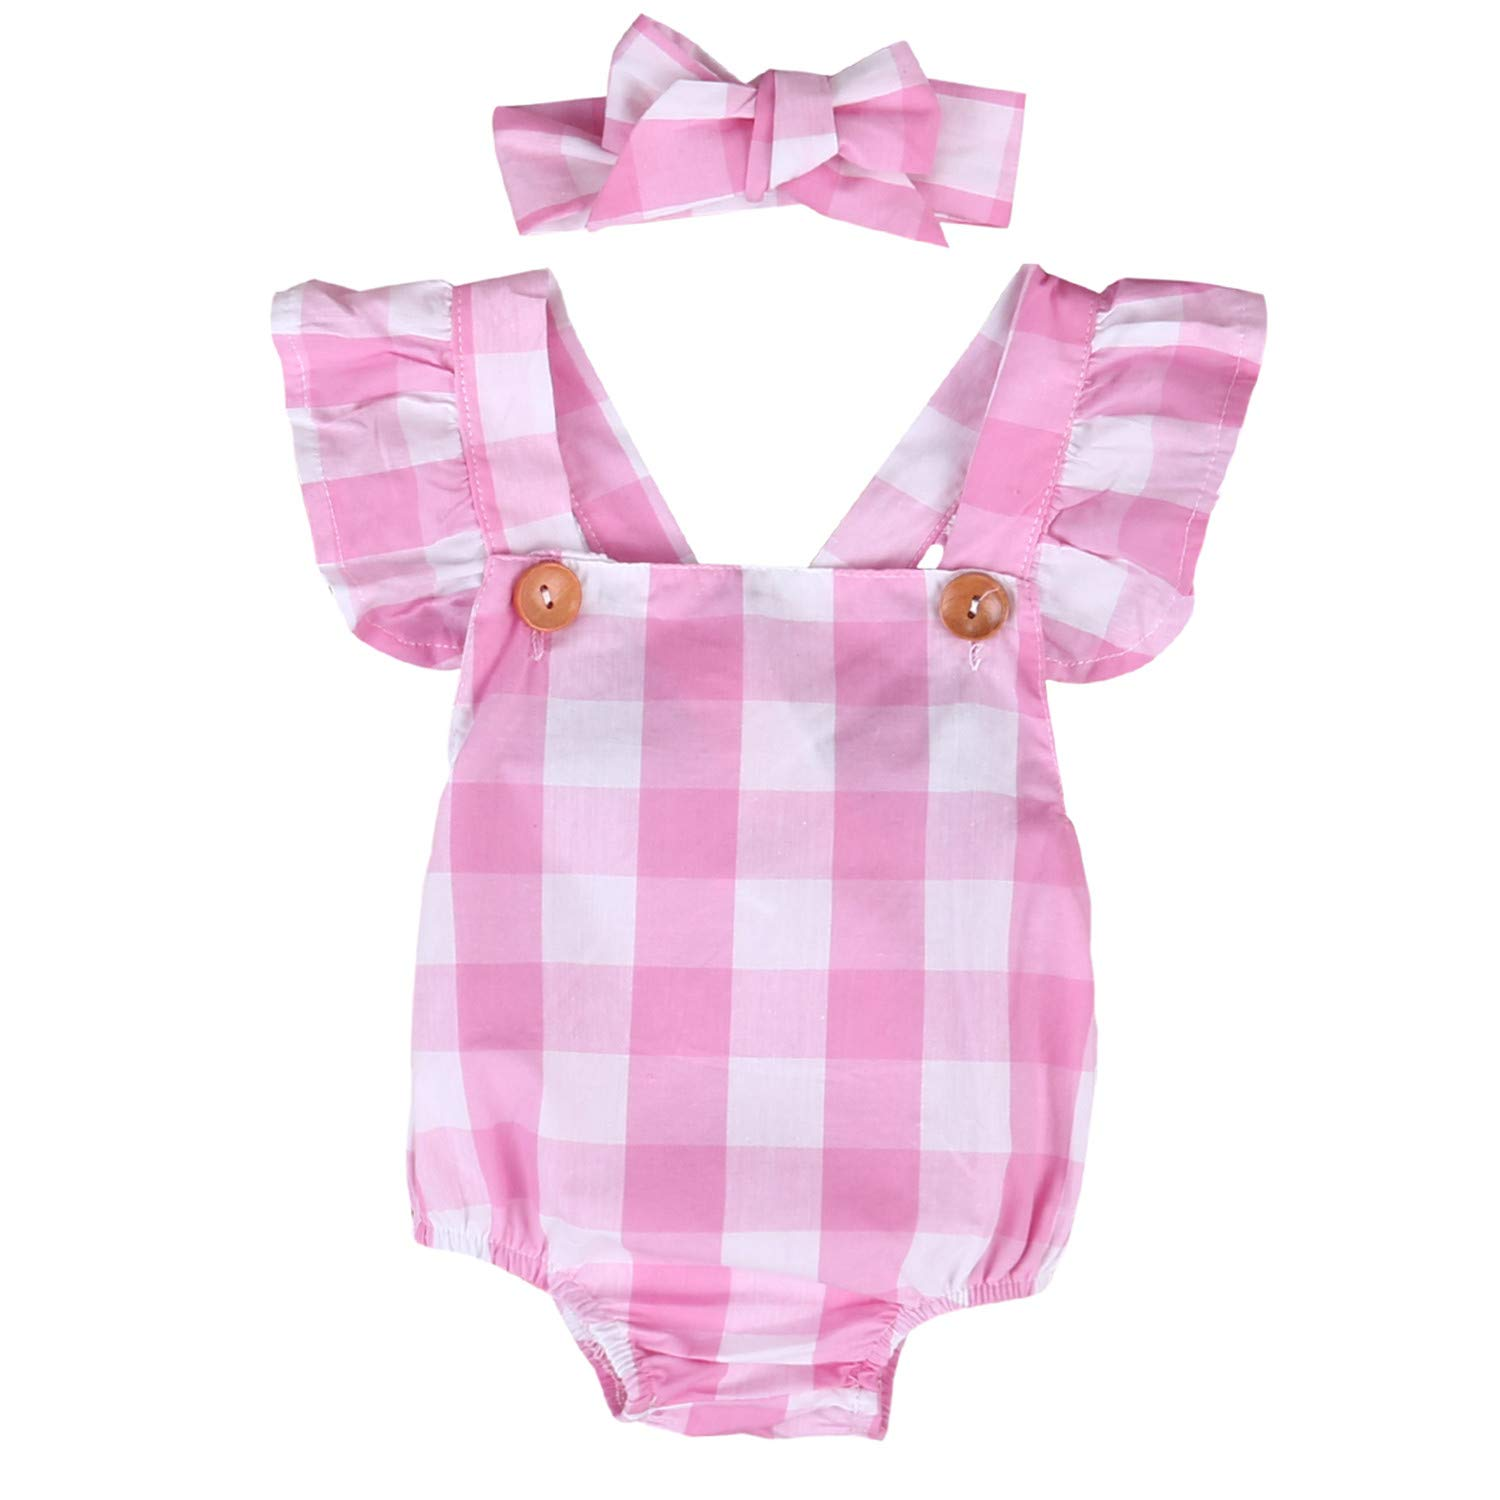 Lucyhu Cute Funny Newborn Infant Baby Girls Boys Short Sleeve Bodysuit Romper Outfits Jumpsuit Infant Clothes